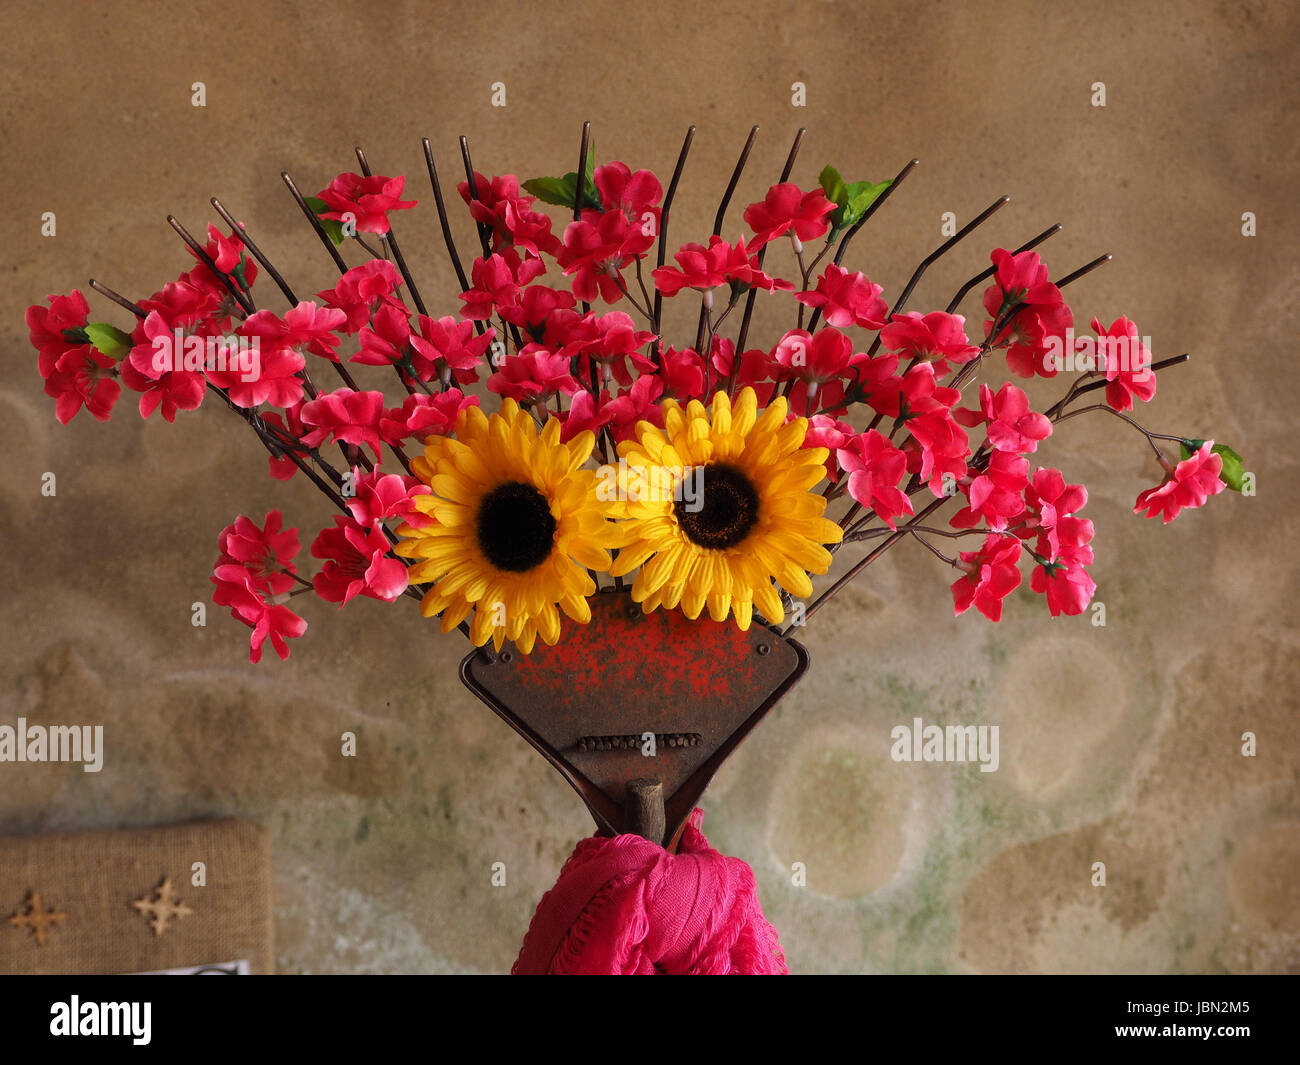 garden rake decorated with artificial red and yellow flowers to resemble a face in Orton church Cumbria, England - Stock Image